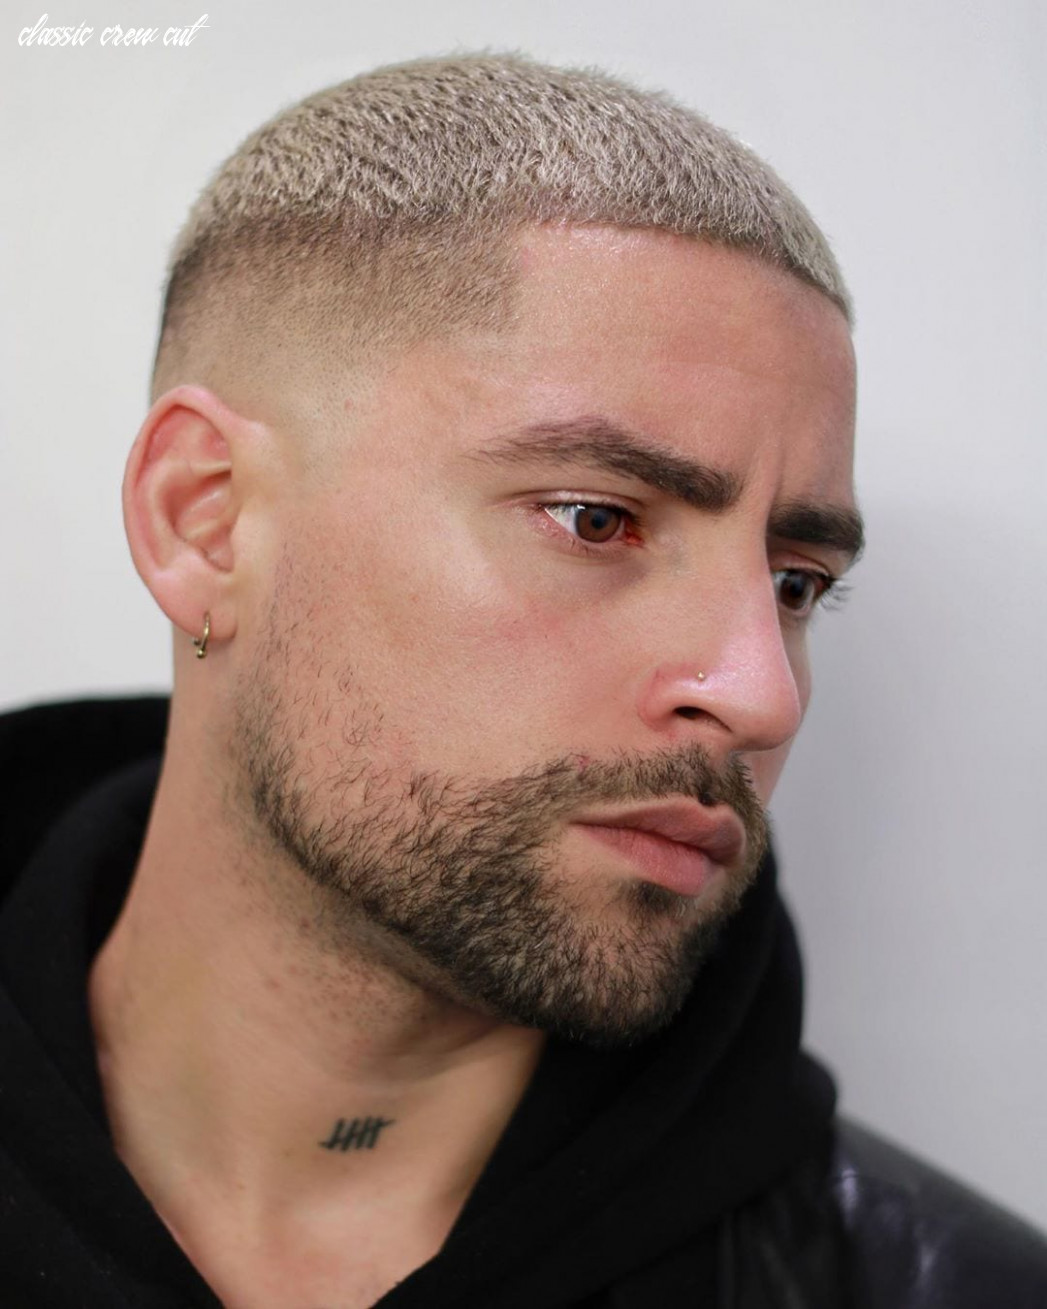 10+ Crew Cut Examples: A Great Choice for Modern Men